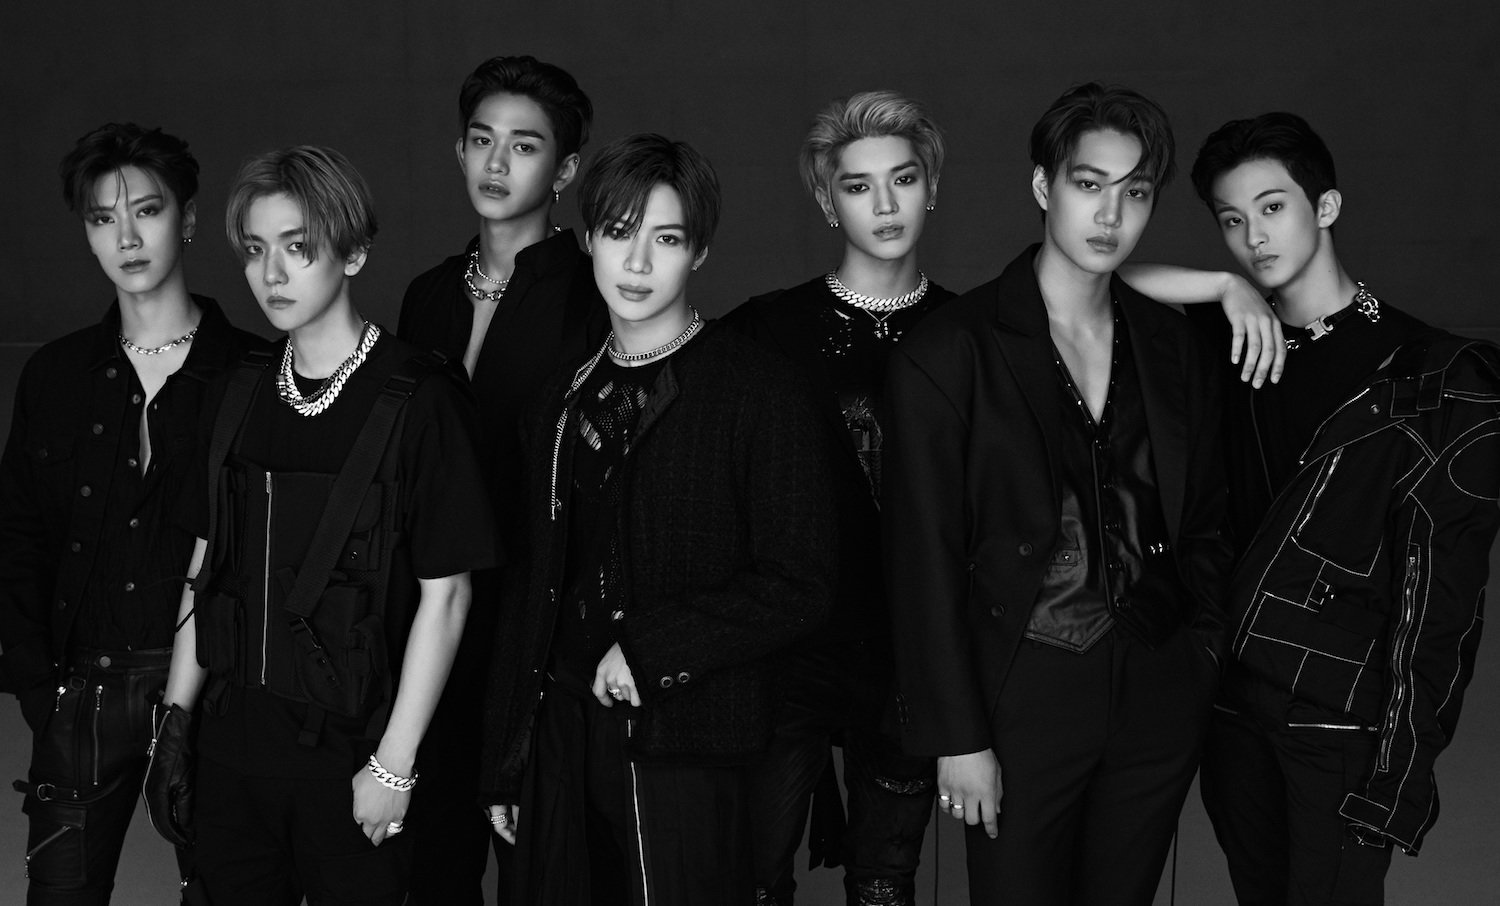 SuperM are lined up, from left to right: Ten, Baekhyun, Lucas, Taemin, Taeyong, Kai, Mark.